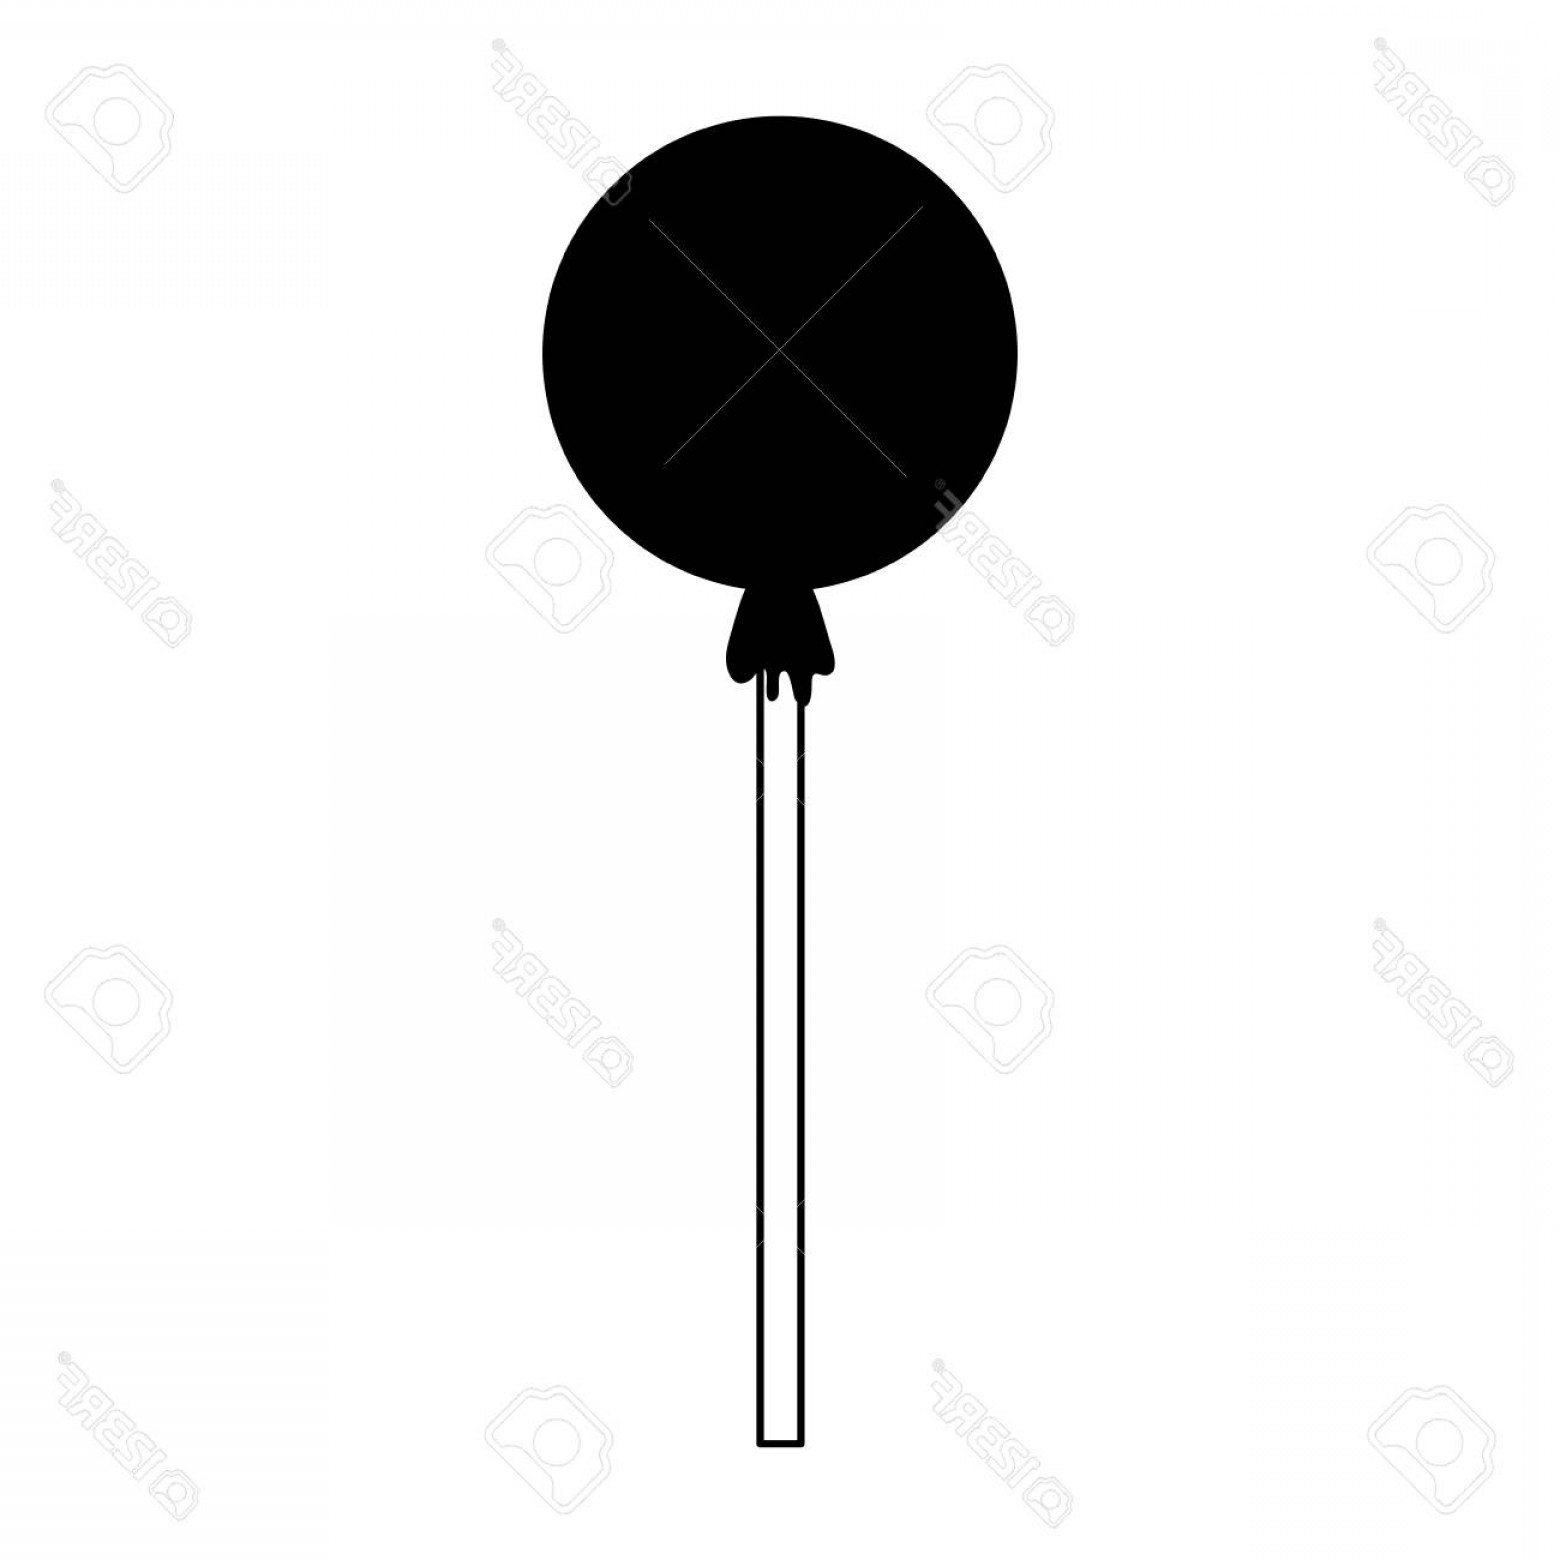 Lollipop Vector Silhouette: Photostock Vector Wrapped Lollipop Candy Icon Image Vector Illustration Design Black And White